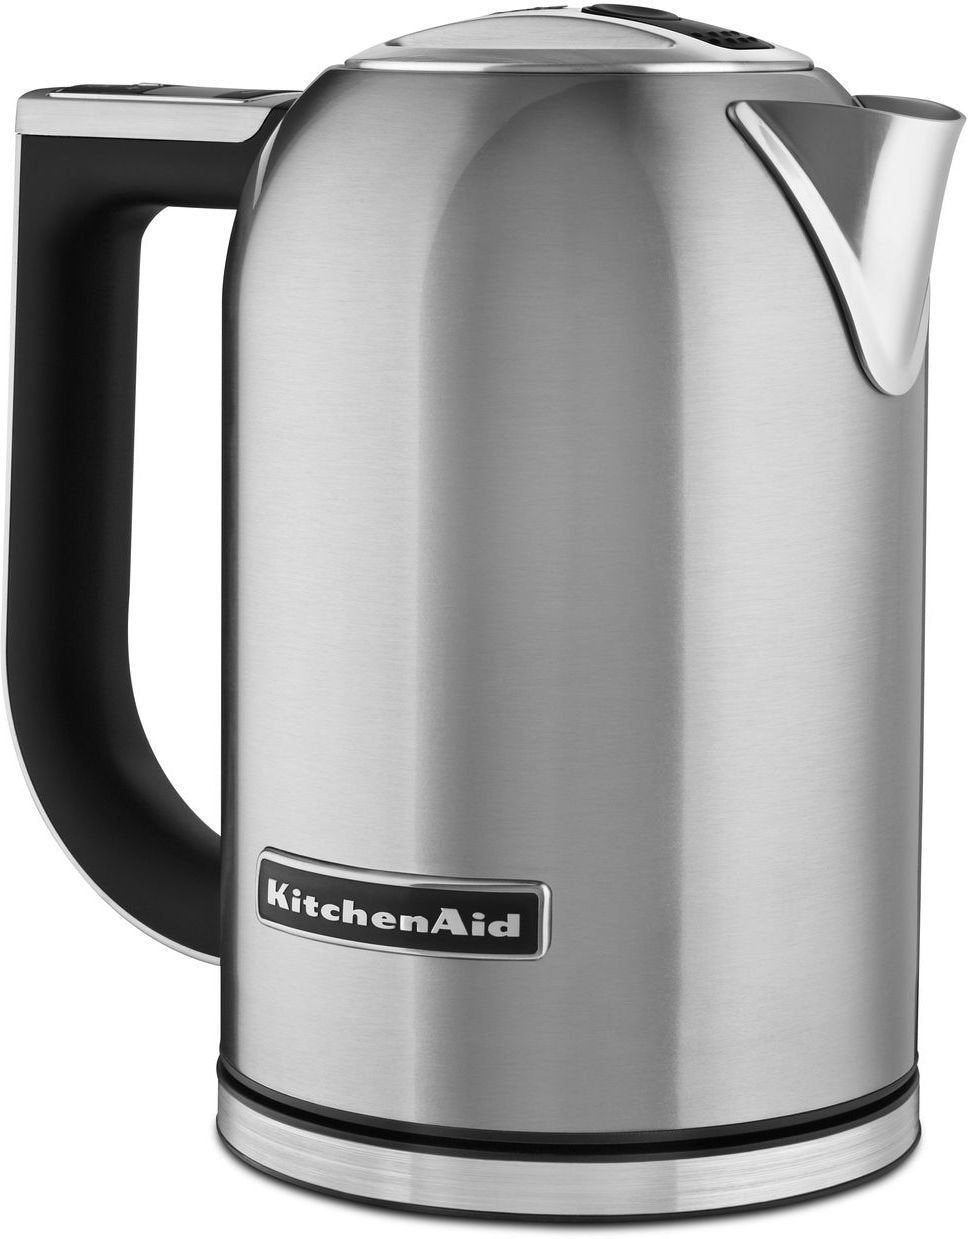 Kitchenaid Brushed Stainless Steel Electric Kettle 1 7 L